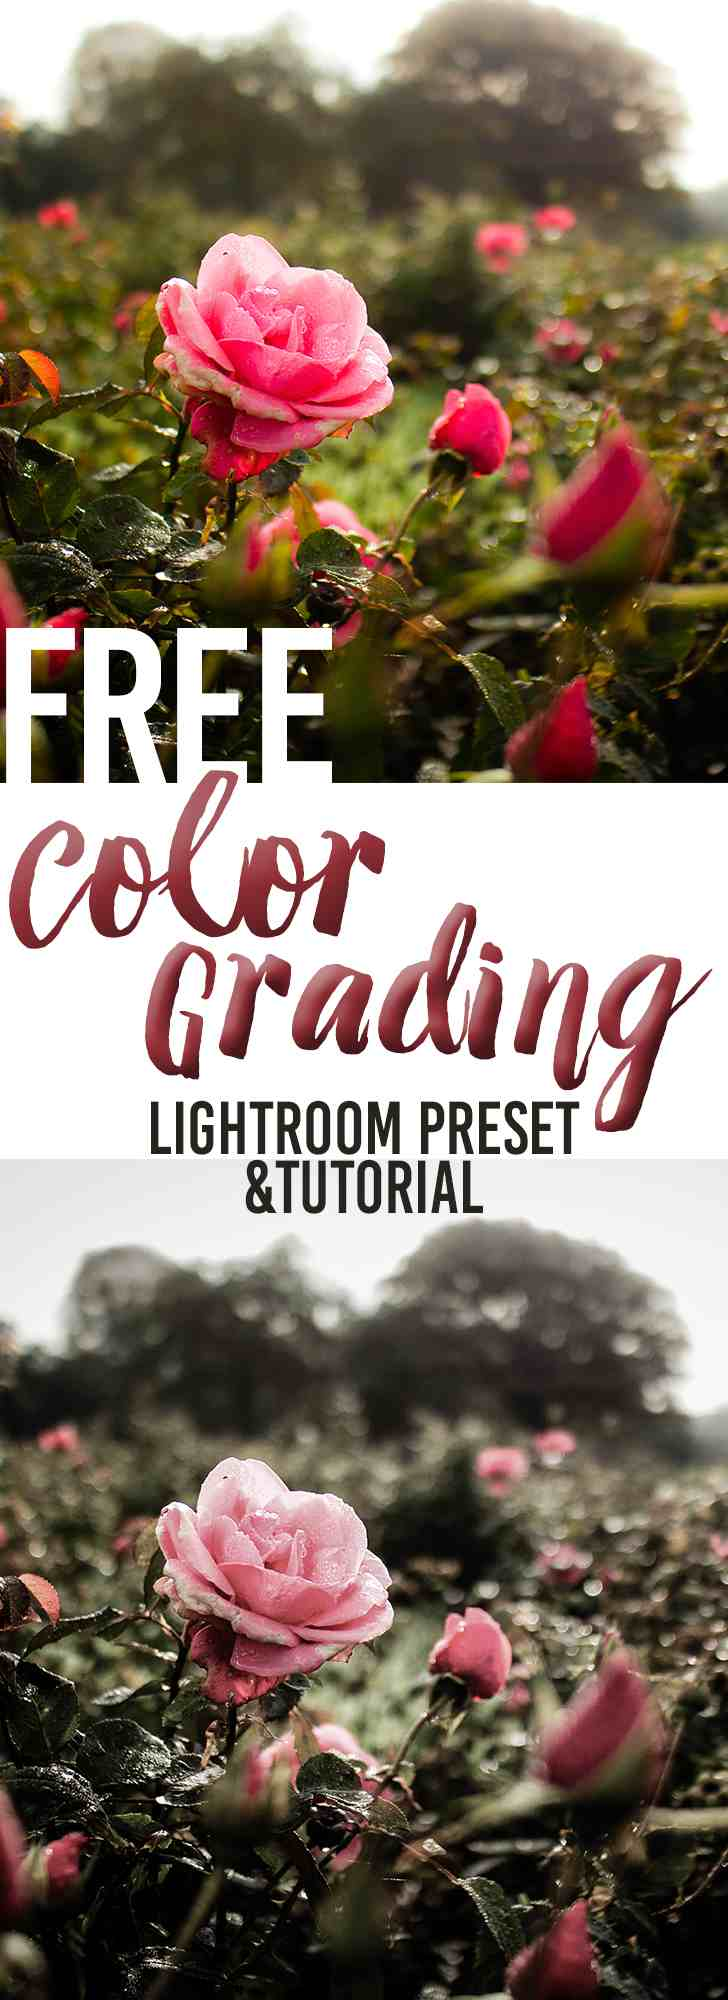 Color Grading Tutorial and Free Lightroom Preset